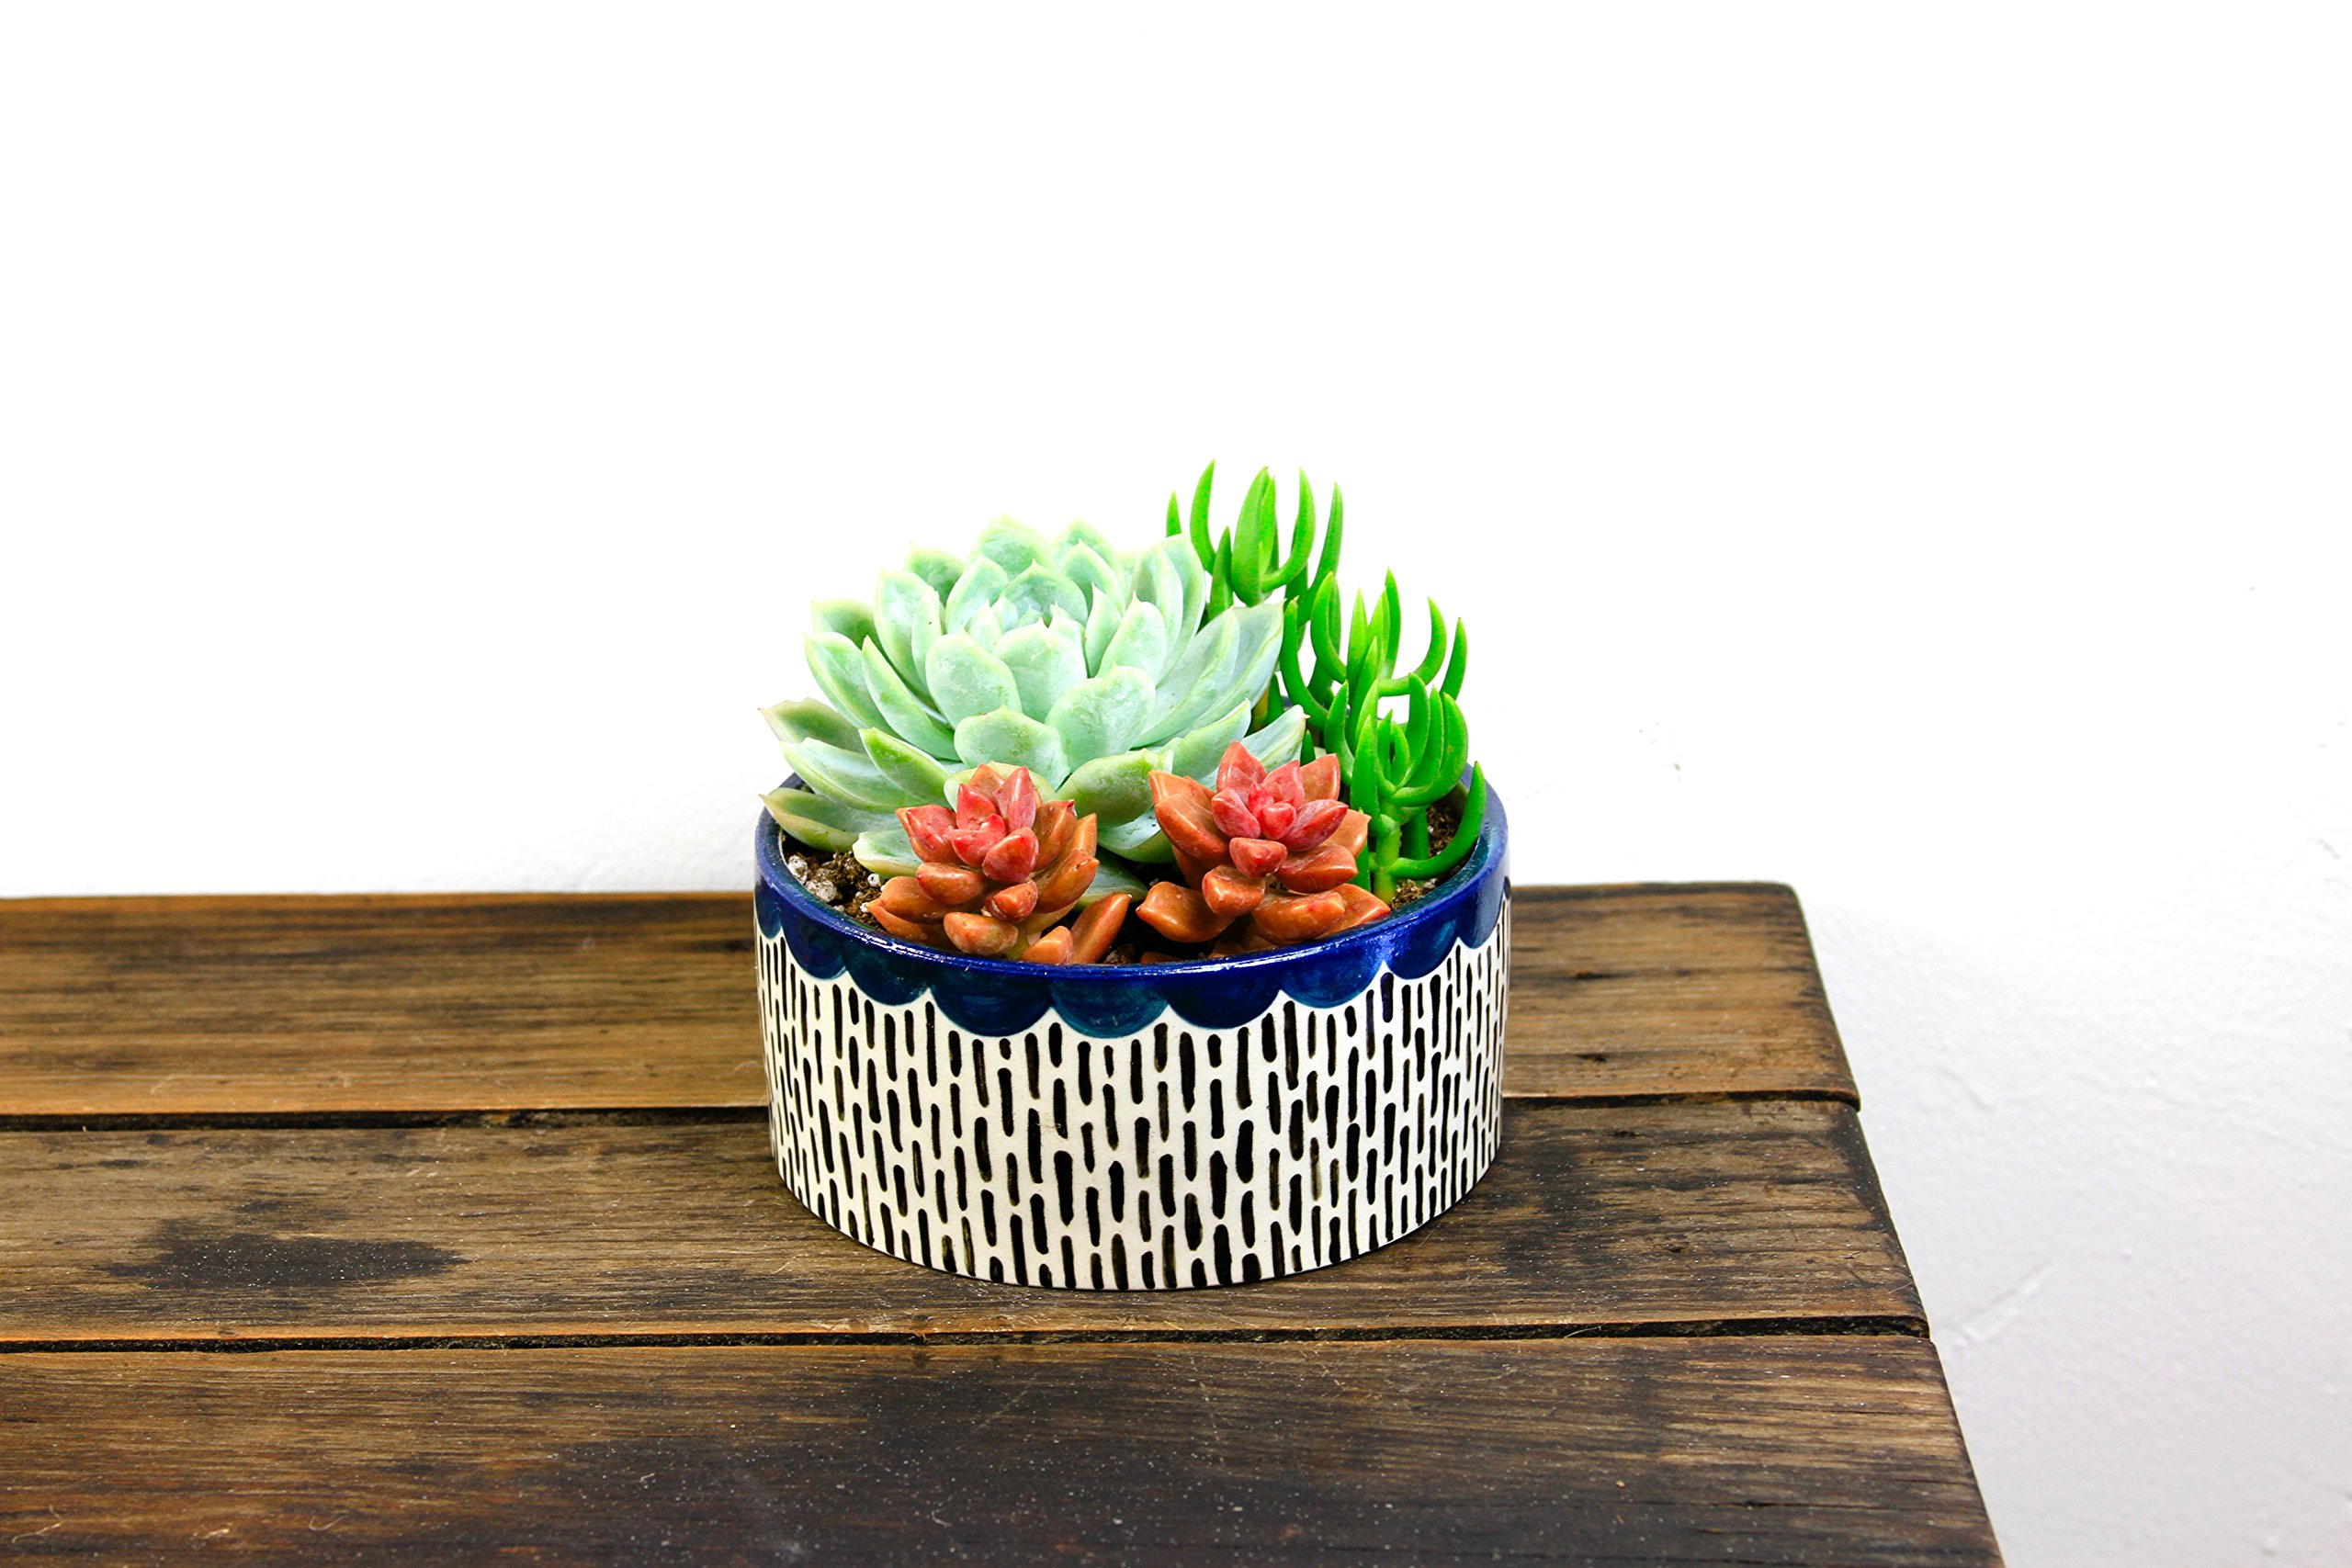 Shop Succulents | Assorted Collection of Live Plants, Hand Selected Variety Pack of Mini Succulents in in 2'' Blue Scalloped Handmade Ceramic Planter